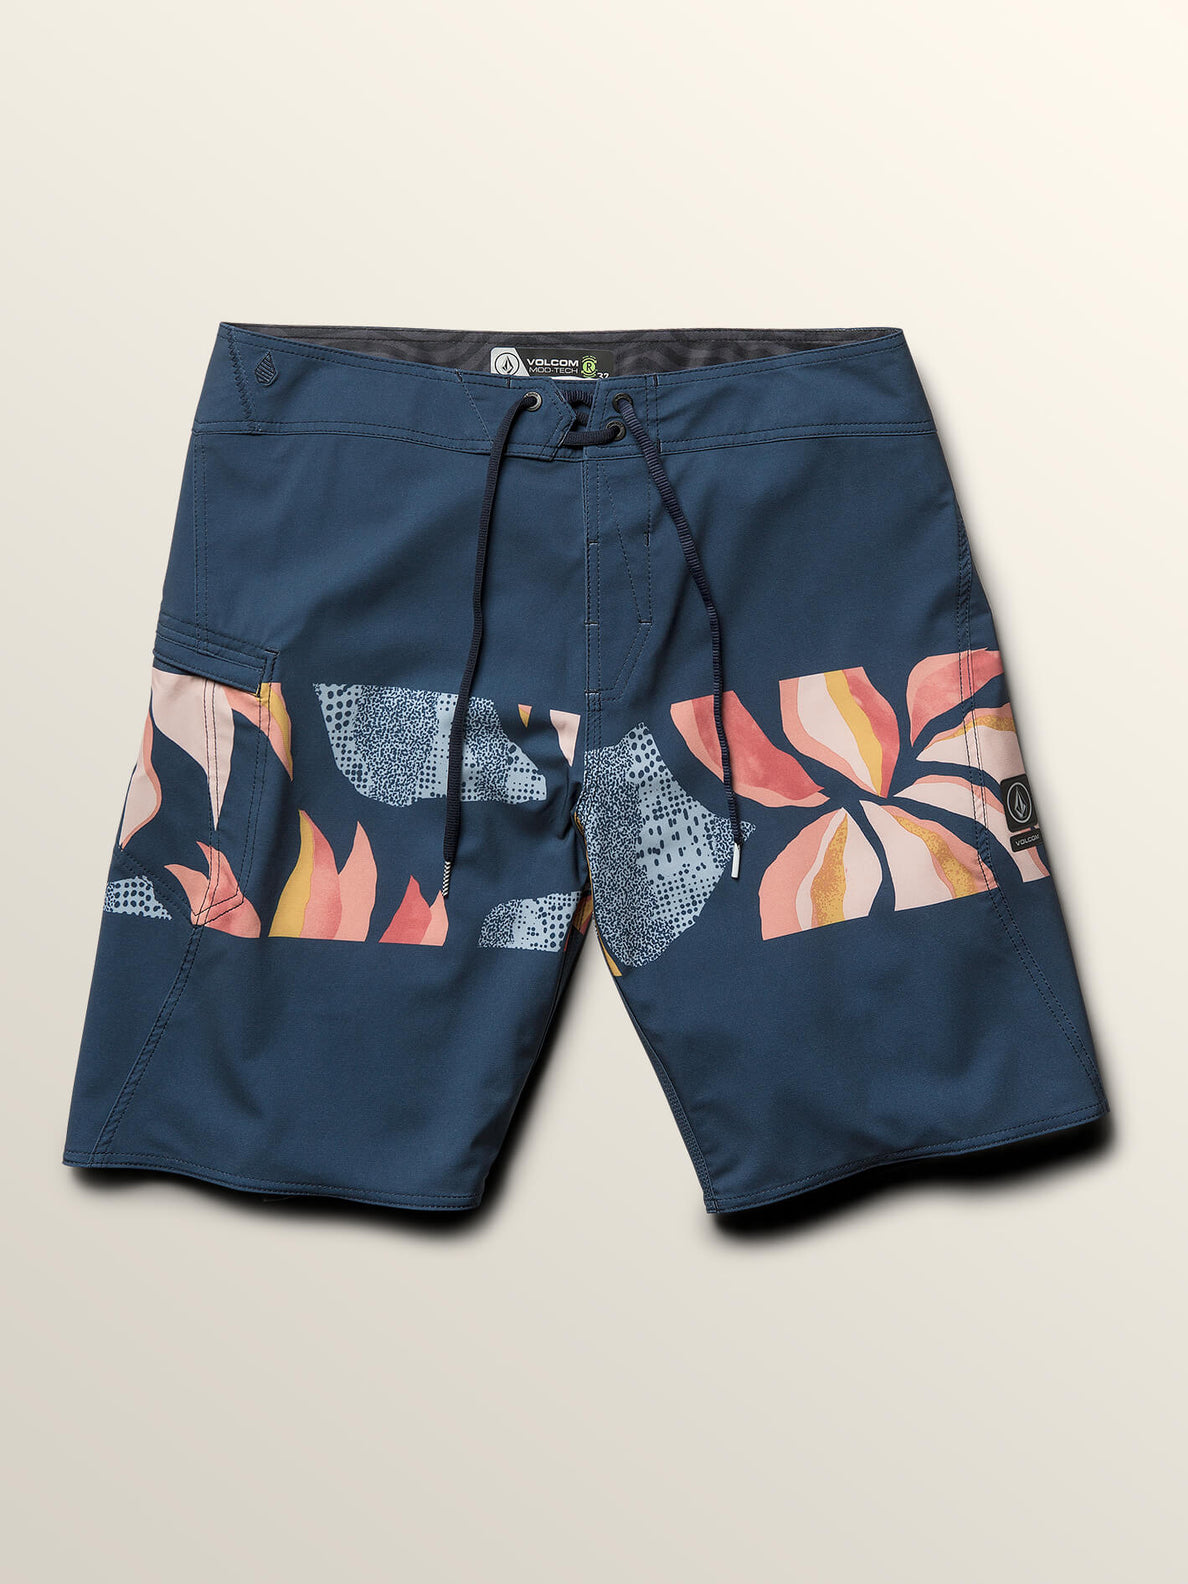 Macaw Mod Boardshorts In Melindigo, Third Alternate View